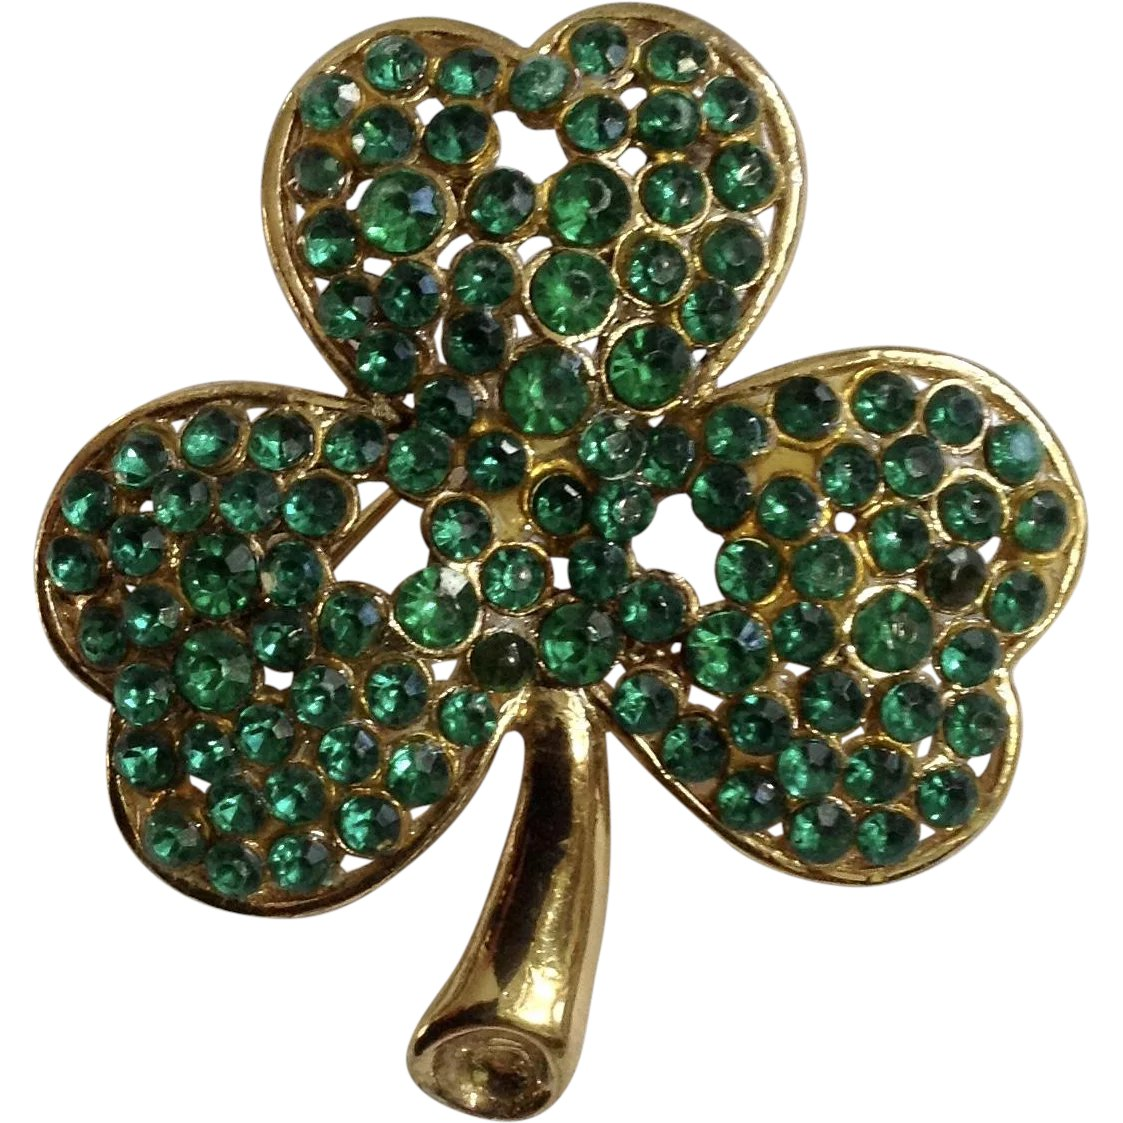 2271af11946 Gold-Tone Clover Encrusted with Green Rhinestones Brooch Pin for Saint :  Gumgumfuninthesun | Ruby Lane